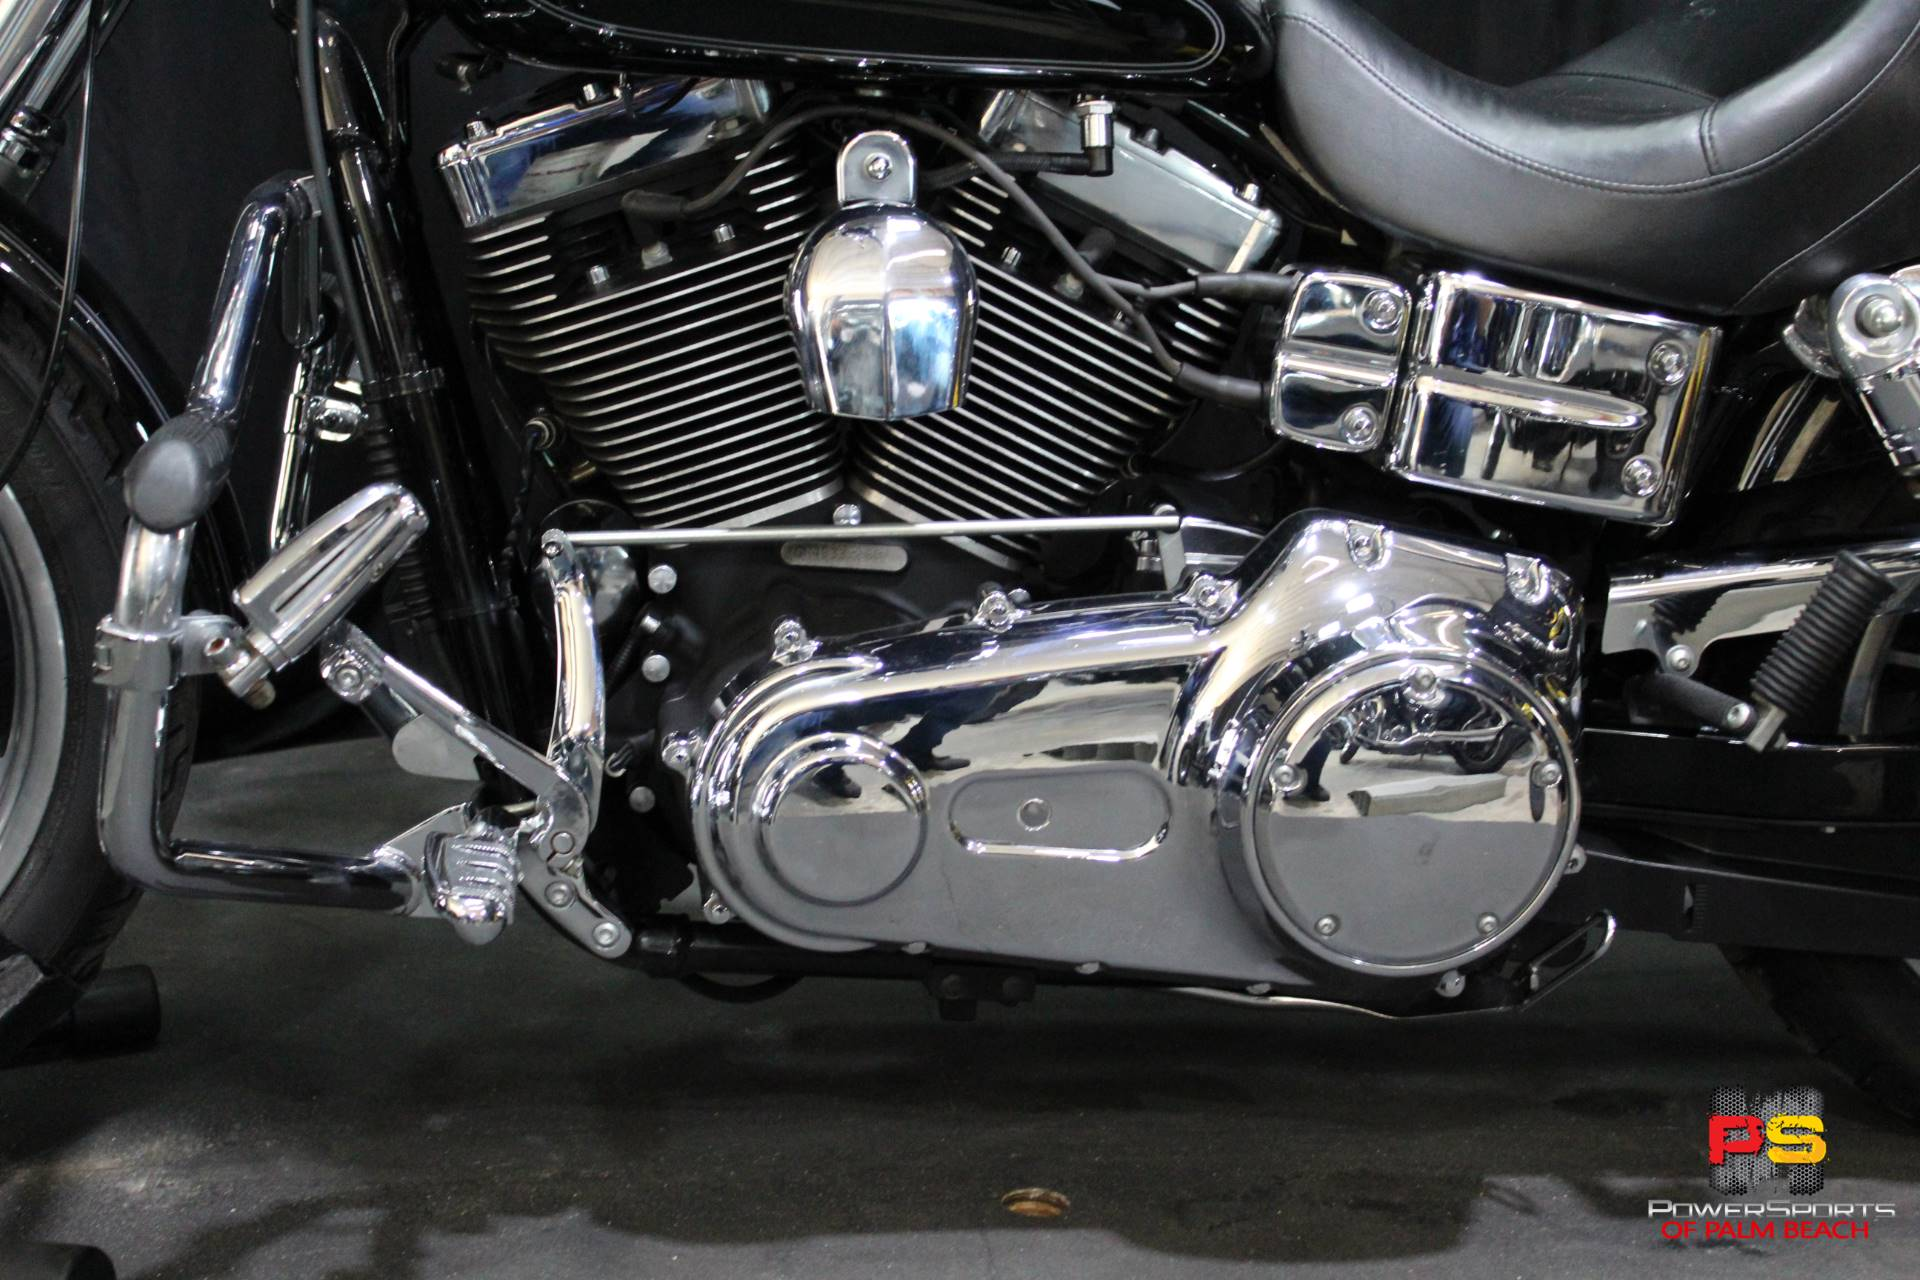 2008 Harley-Davidson Dyna Low Rider in Lake Park, Florida - Photo 19